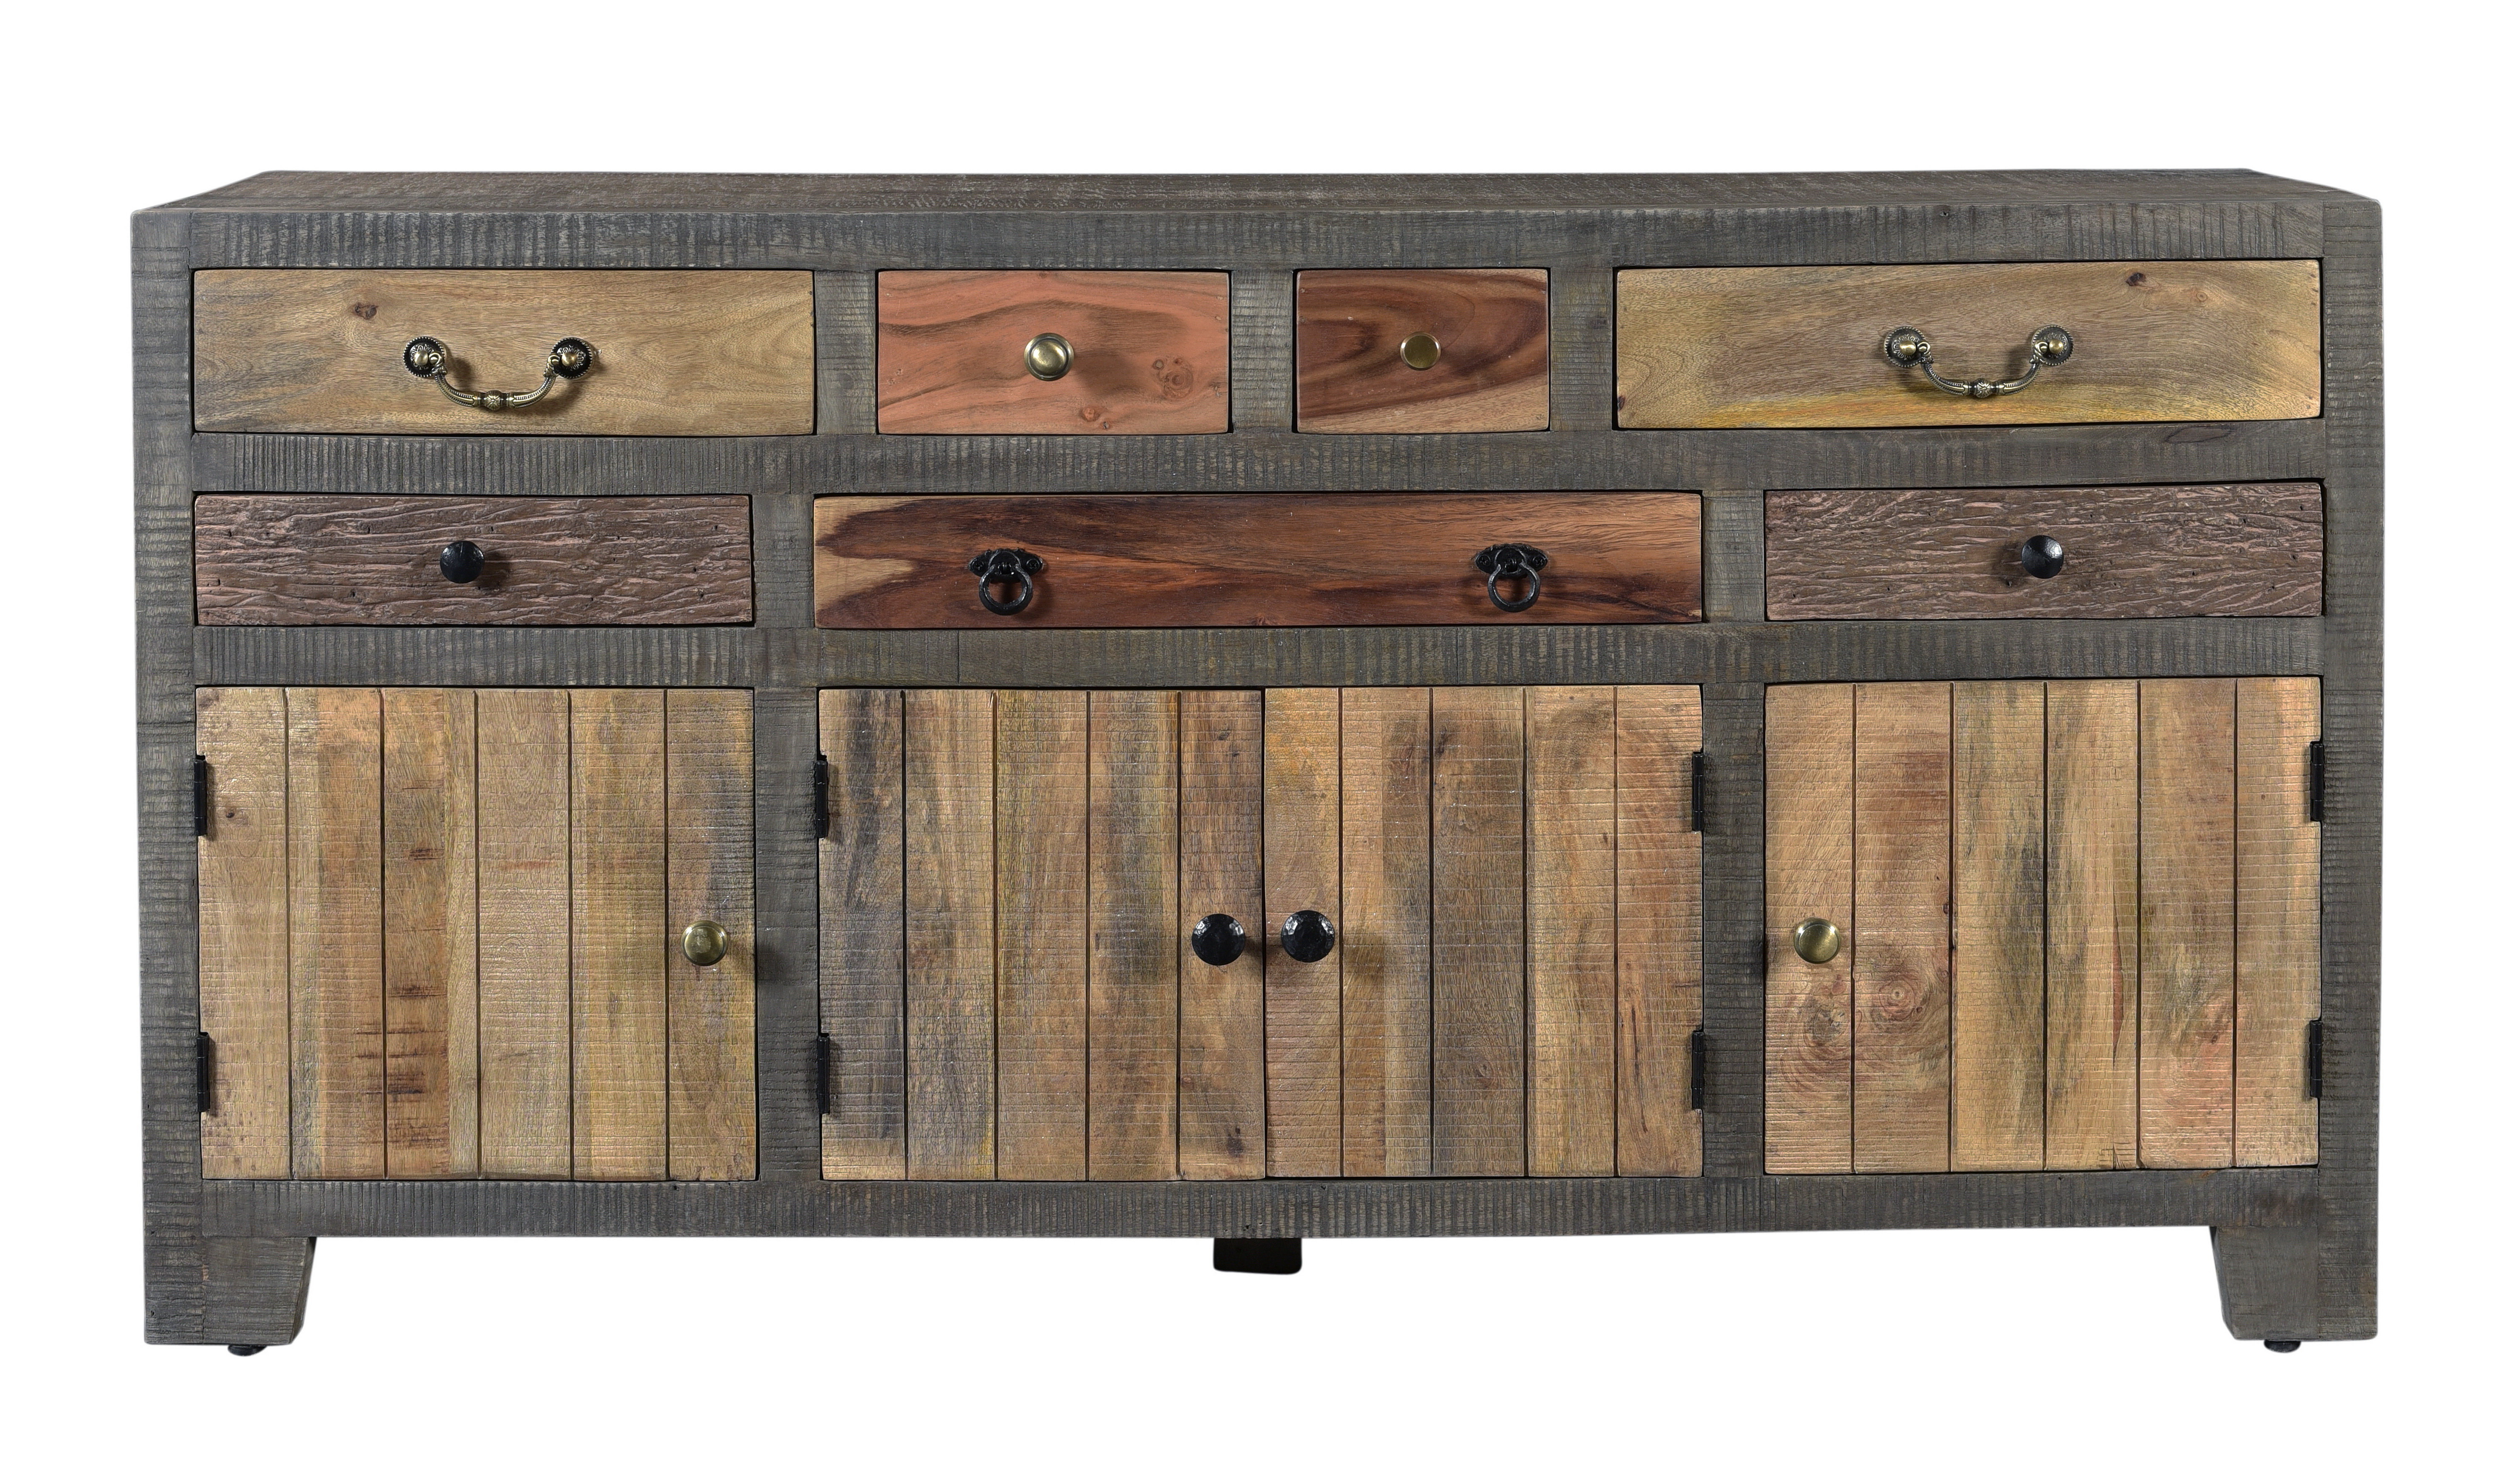 Joss & Main Throughout Fashionable Open Shelf Brass 4 Drawer Sideboards (View 8 of 20)